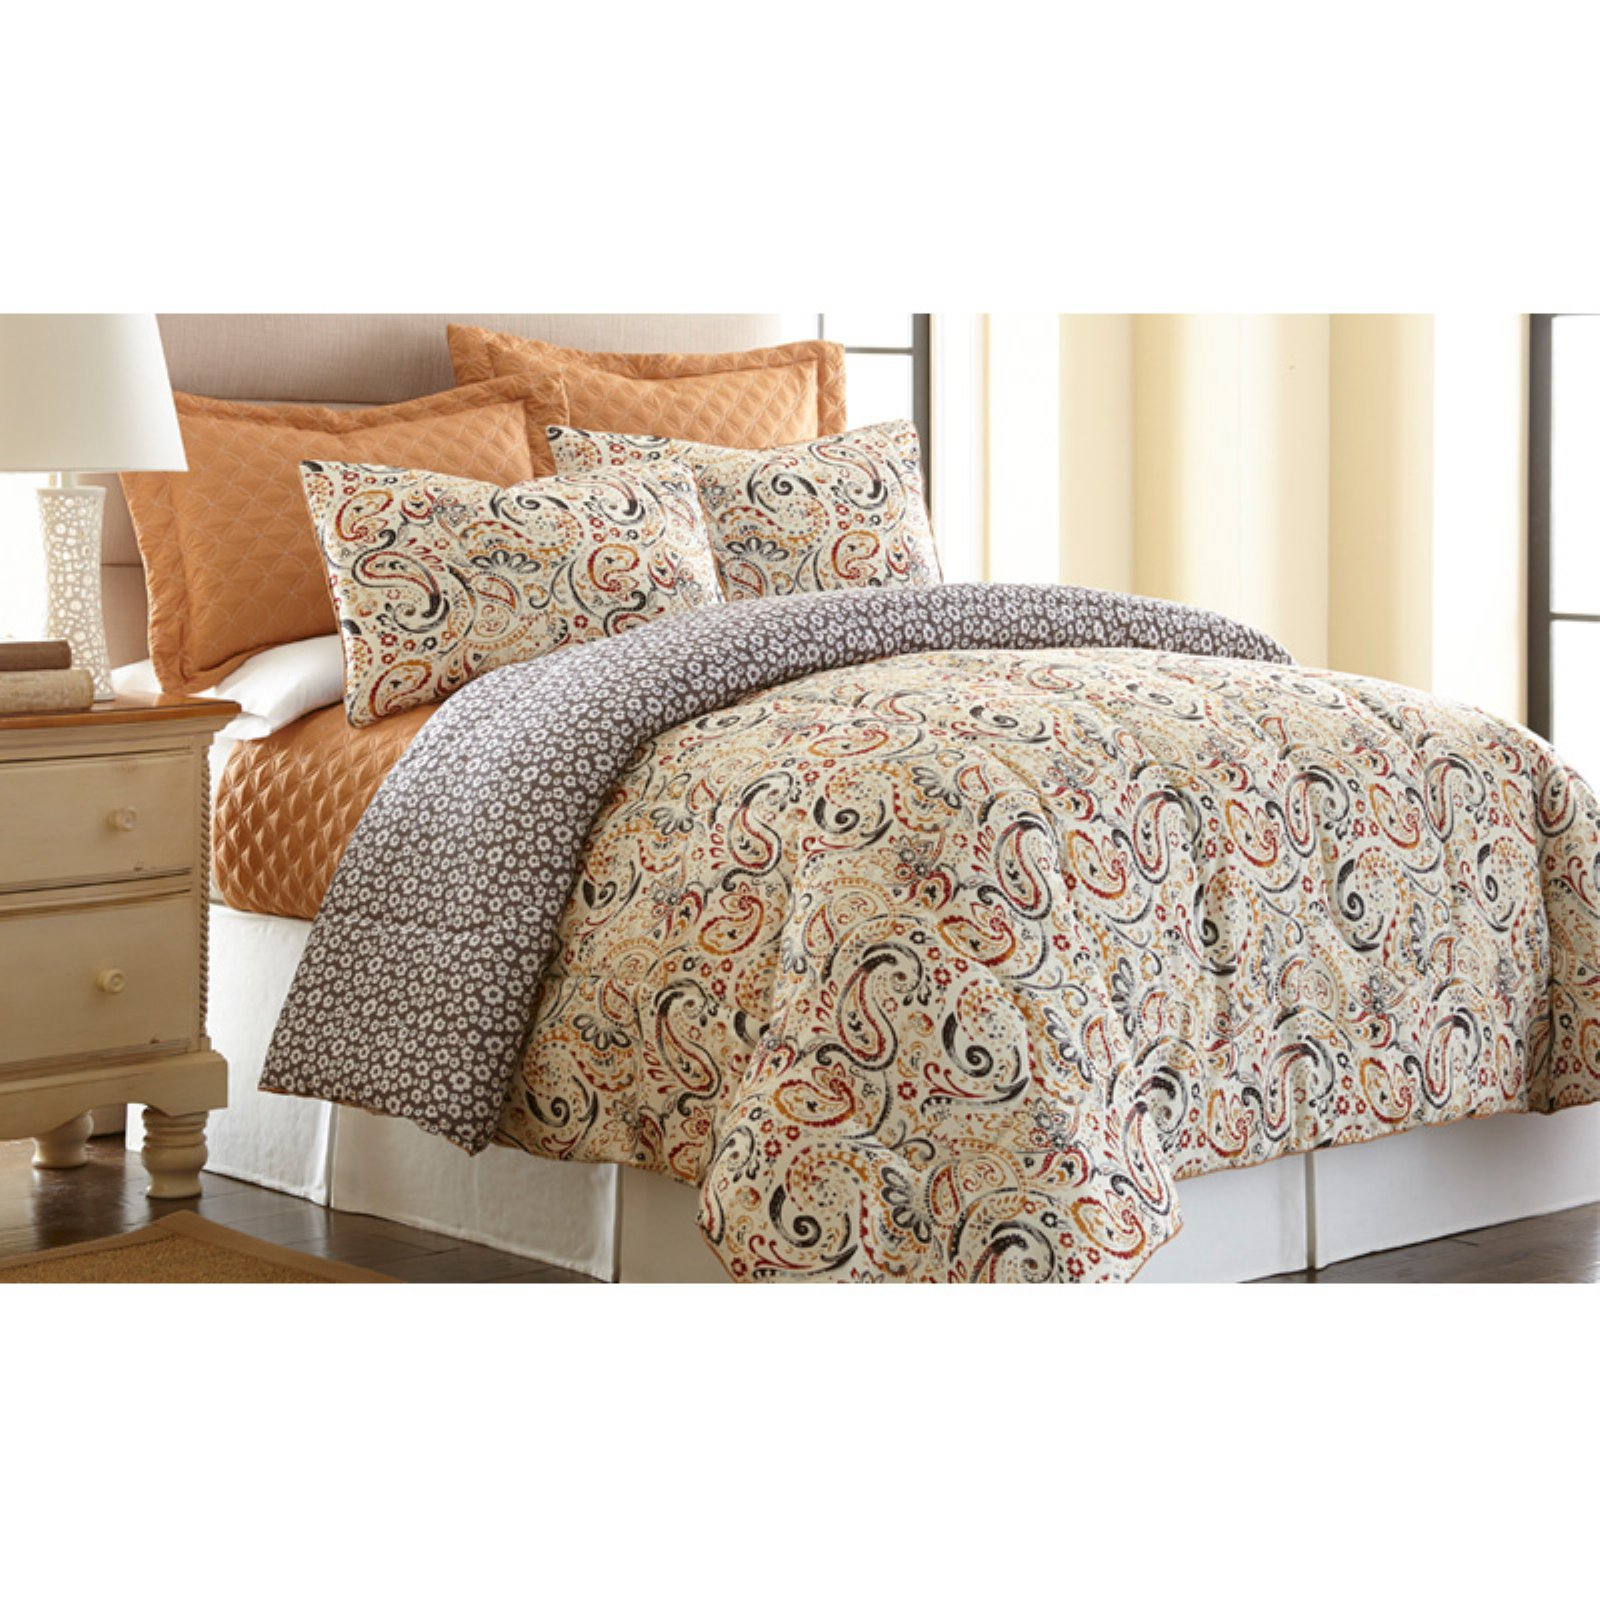 6 Piece Comforter/Coverlet Set - Mavia